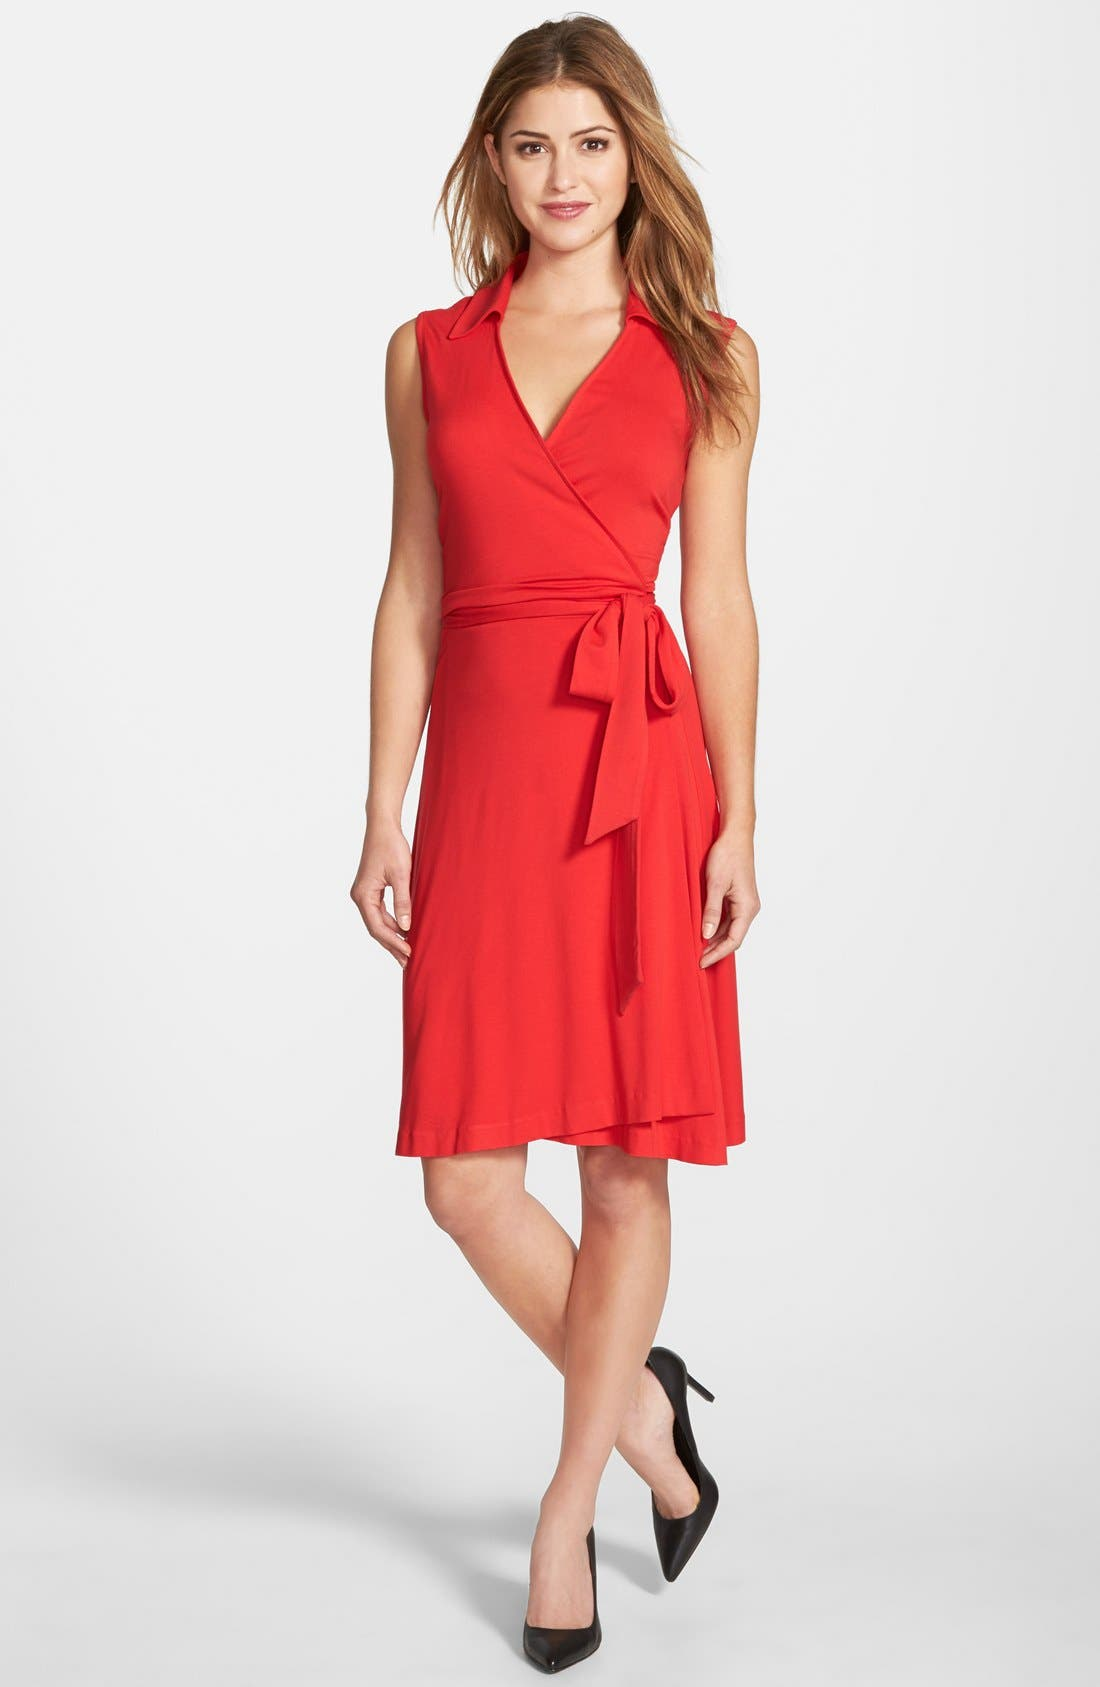 Main Image - Vince Camuto Sleeveless Wrap Jersey Dress (Regular & Petite) (Nordstrom Exclusive)